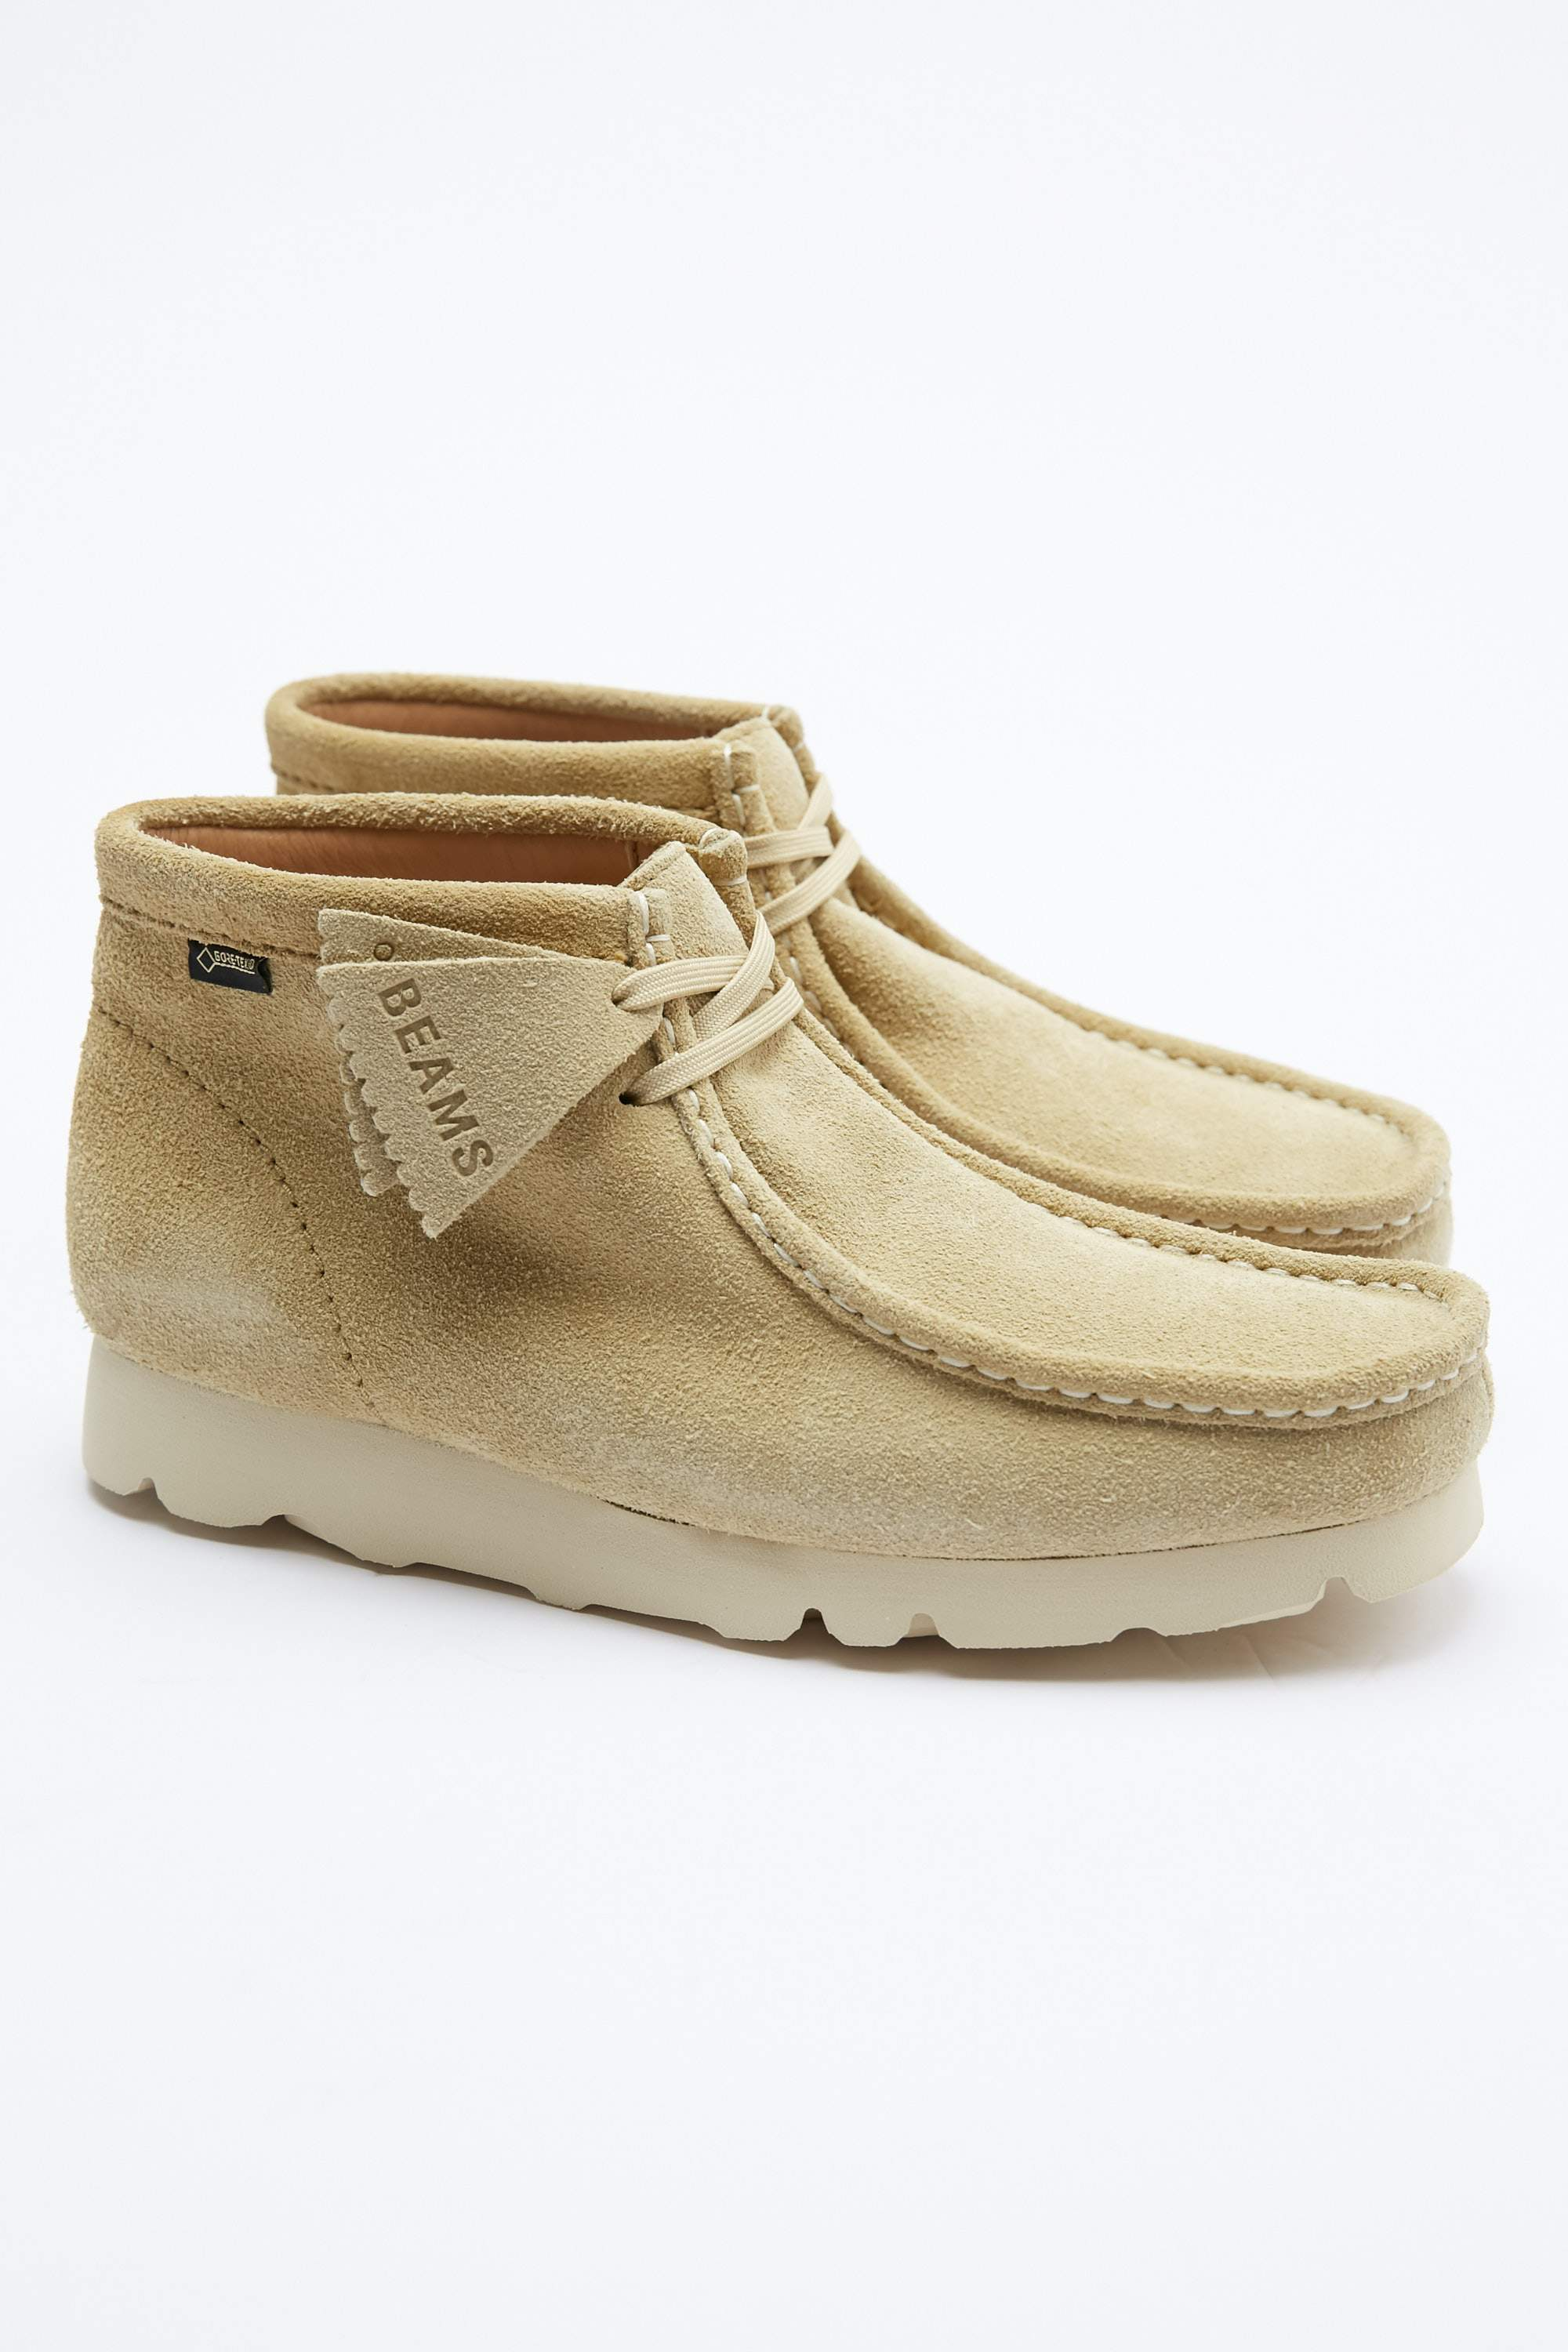 d57e04ce Clarks x BEAMS Gore-Tex Wallabee Boot - Maple